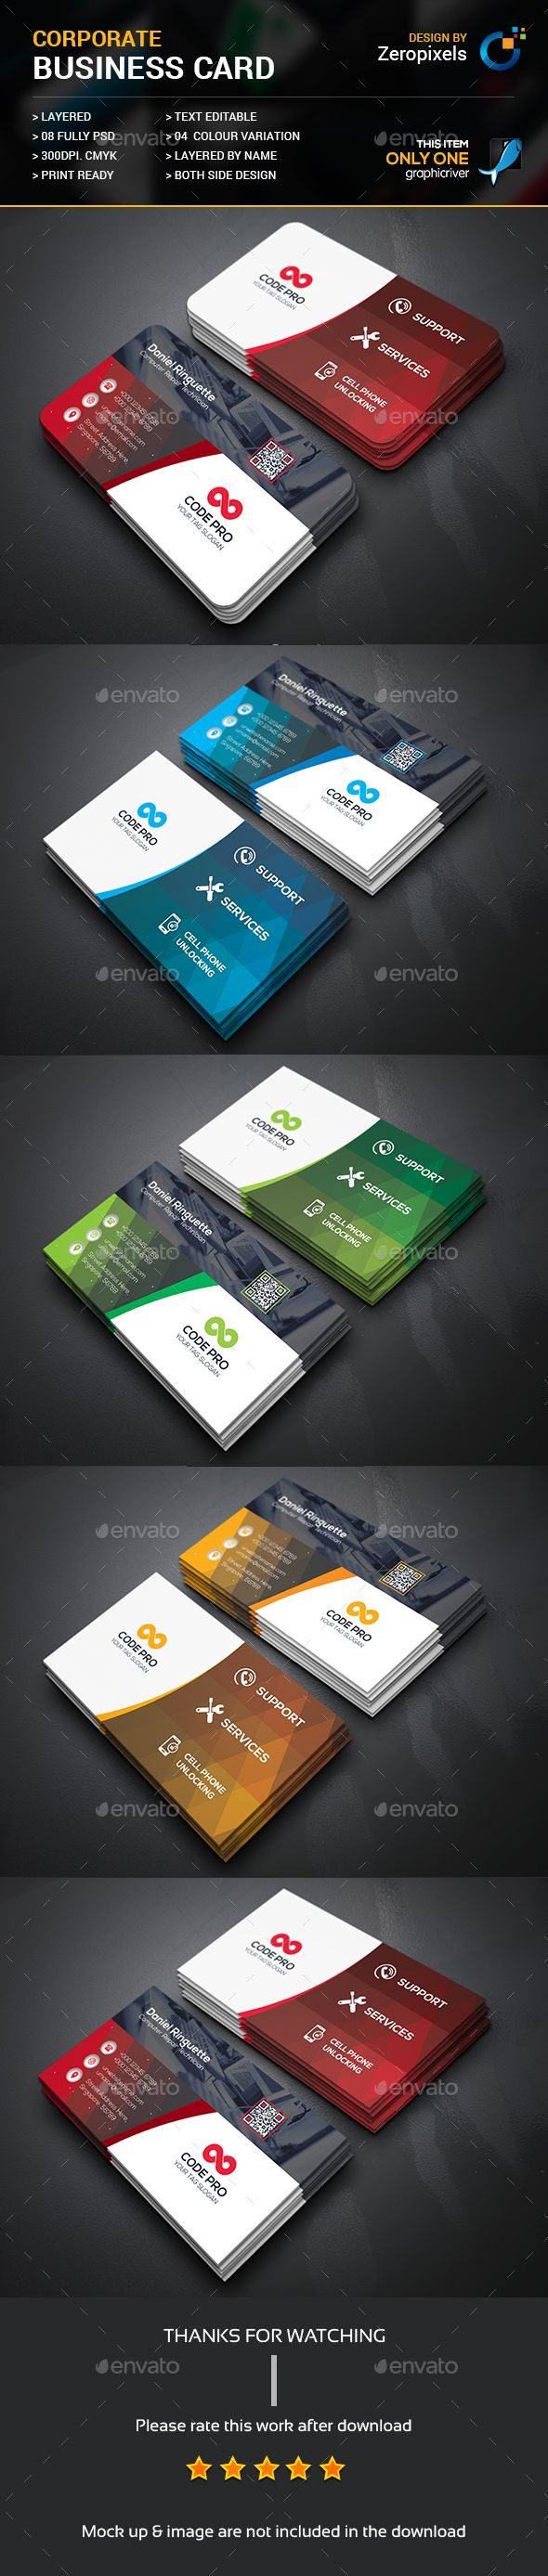 Mobile Computer Repair Business Card — Photoshop PSD #blue #print • Available here → https://graphicriver.net/item/mobile-computer-repair-business-card/18036989?ref=pxcr